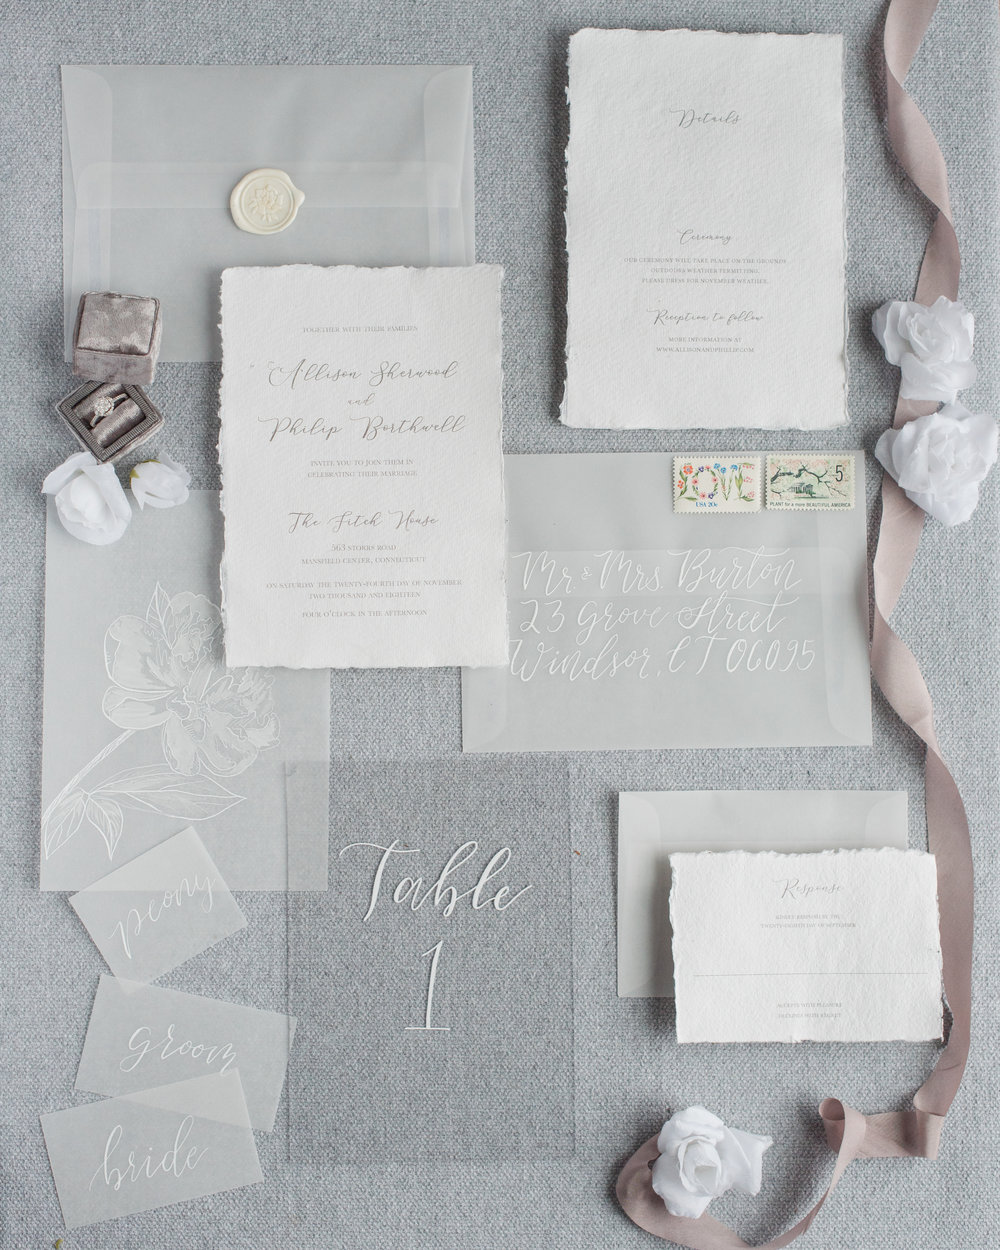 november28-the-fitch-house-custom-wedding-invitation-suite-calligraphy-envelope-addressing-16.jpg